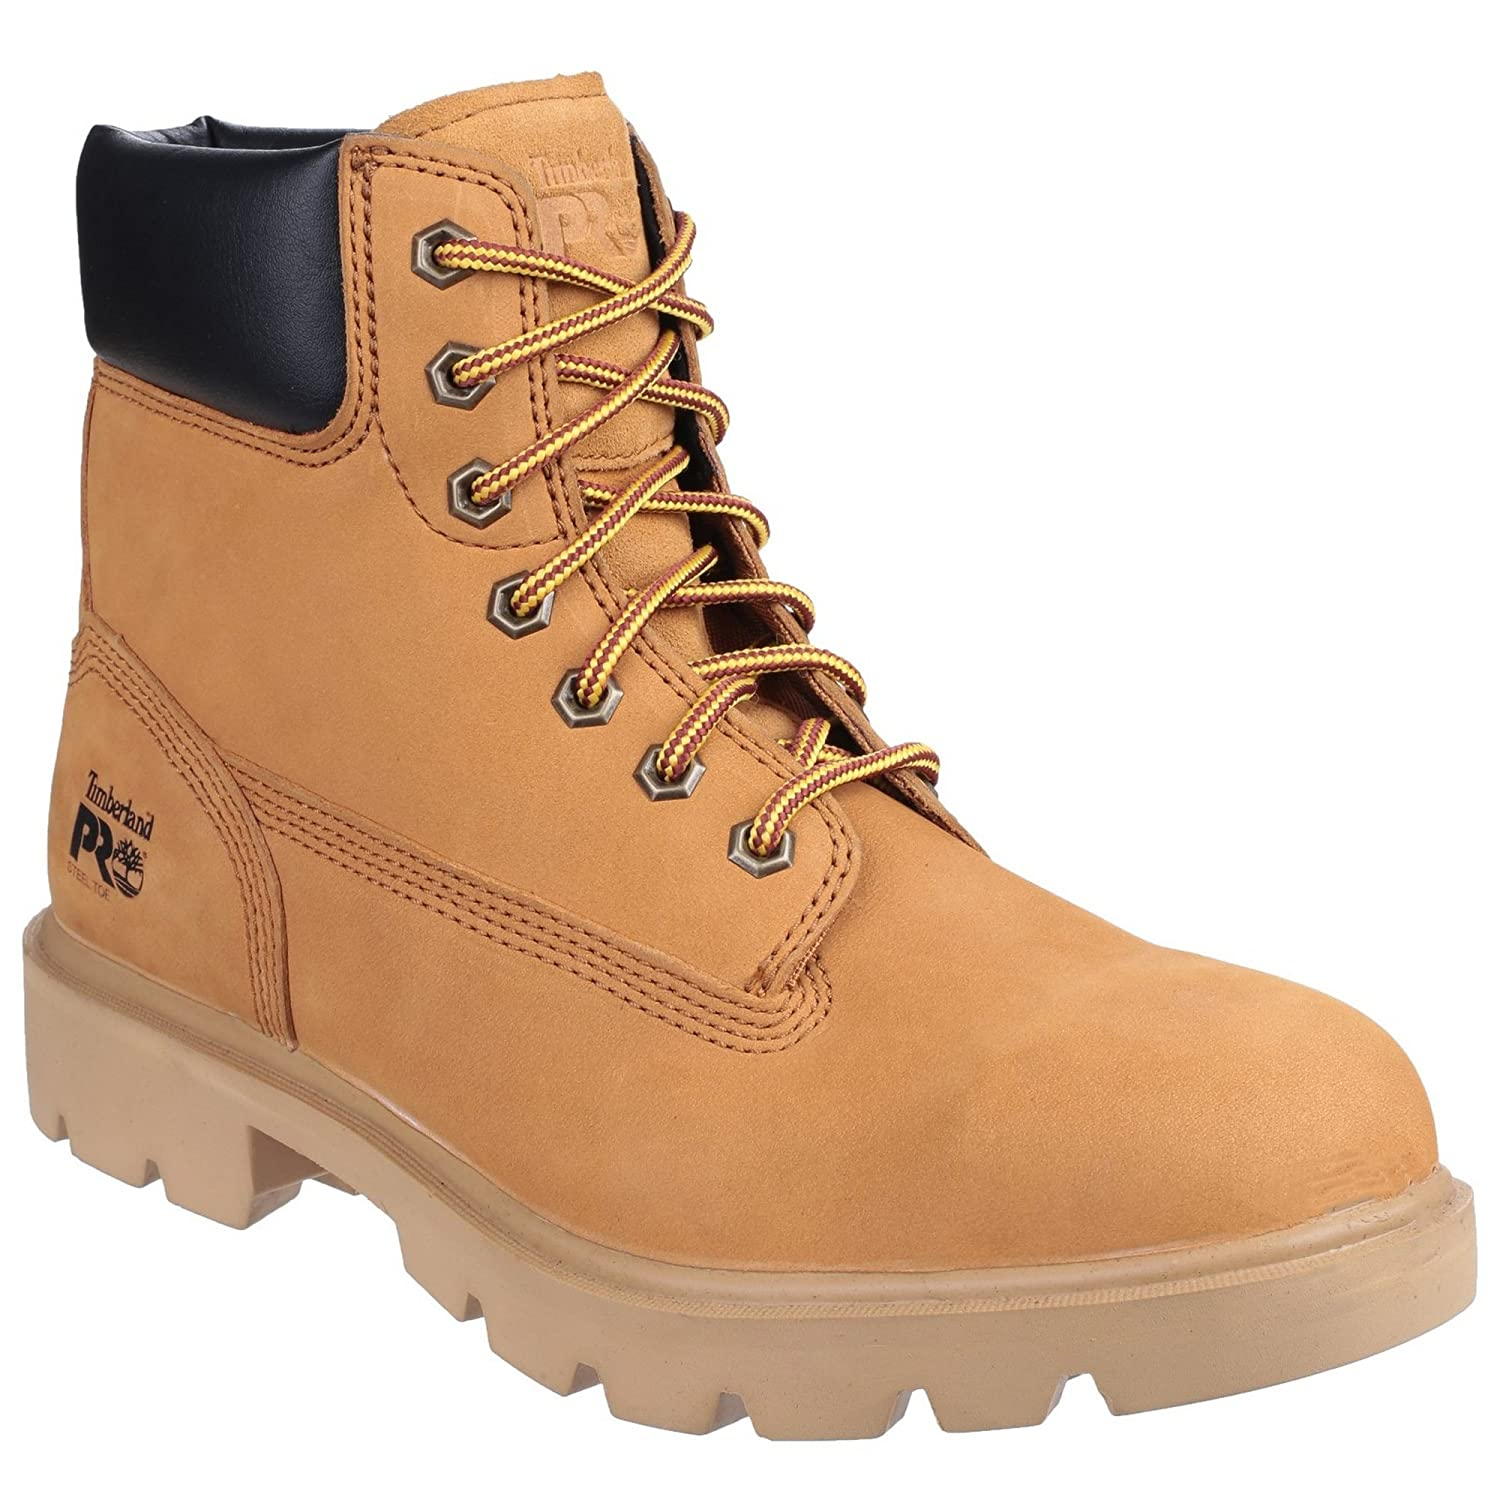 Timberland Mens Sawhorse Wide Lace up Leather Work Safety Stiefel B01JSBED3Q    Ausgewählte Materialien